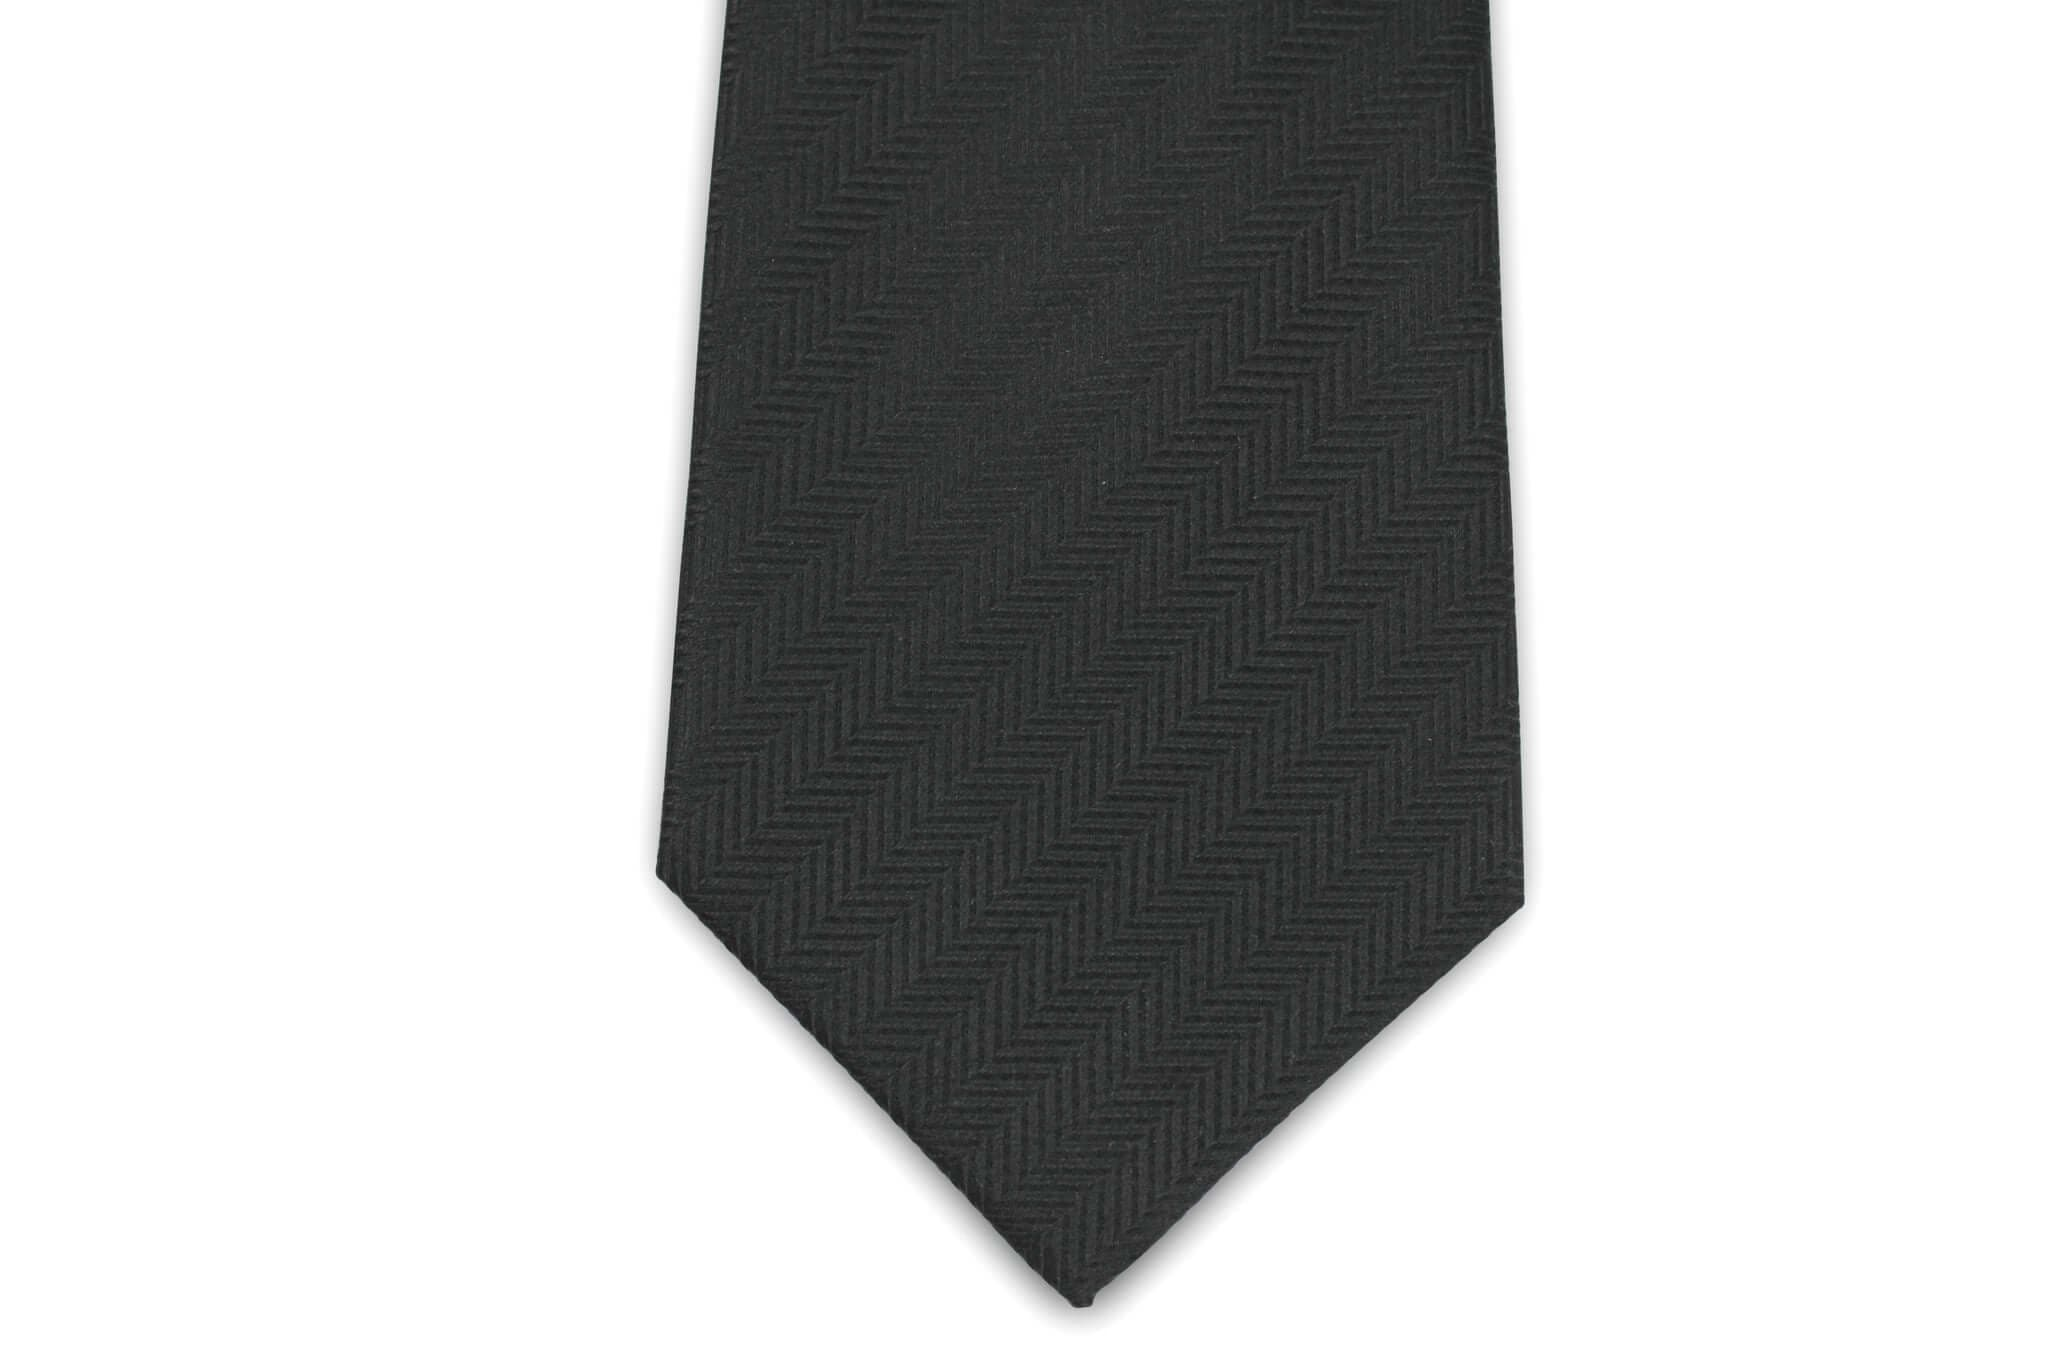 c80cee438c27 100% Silk Extra Long Solid Black Herringbone Tie for Big and Tall Men